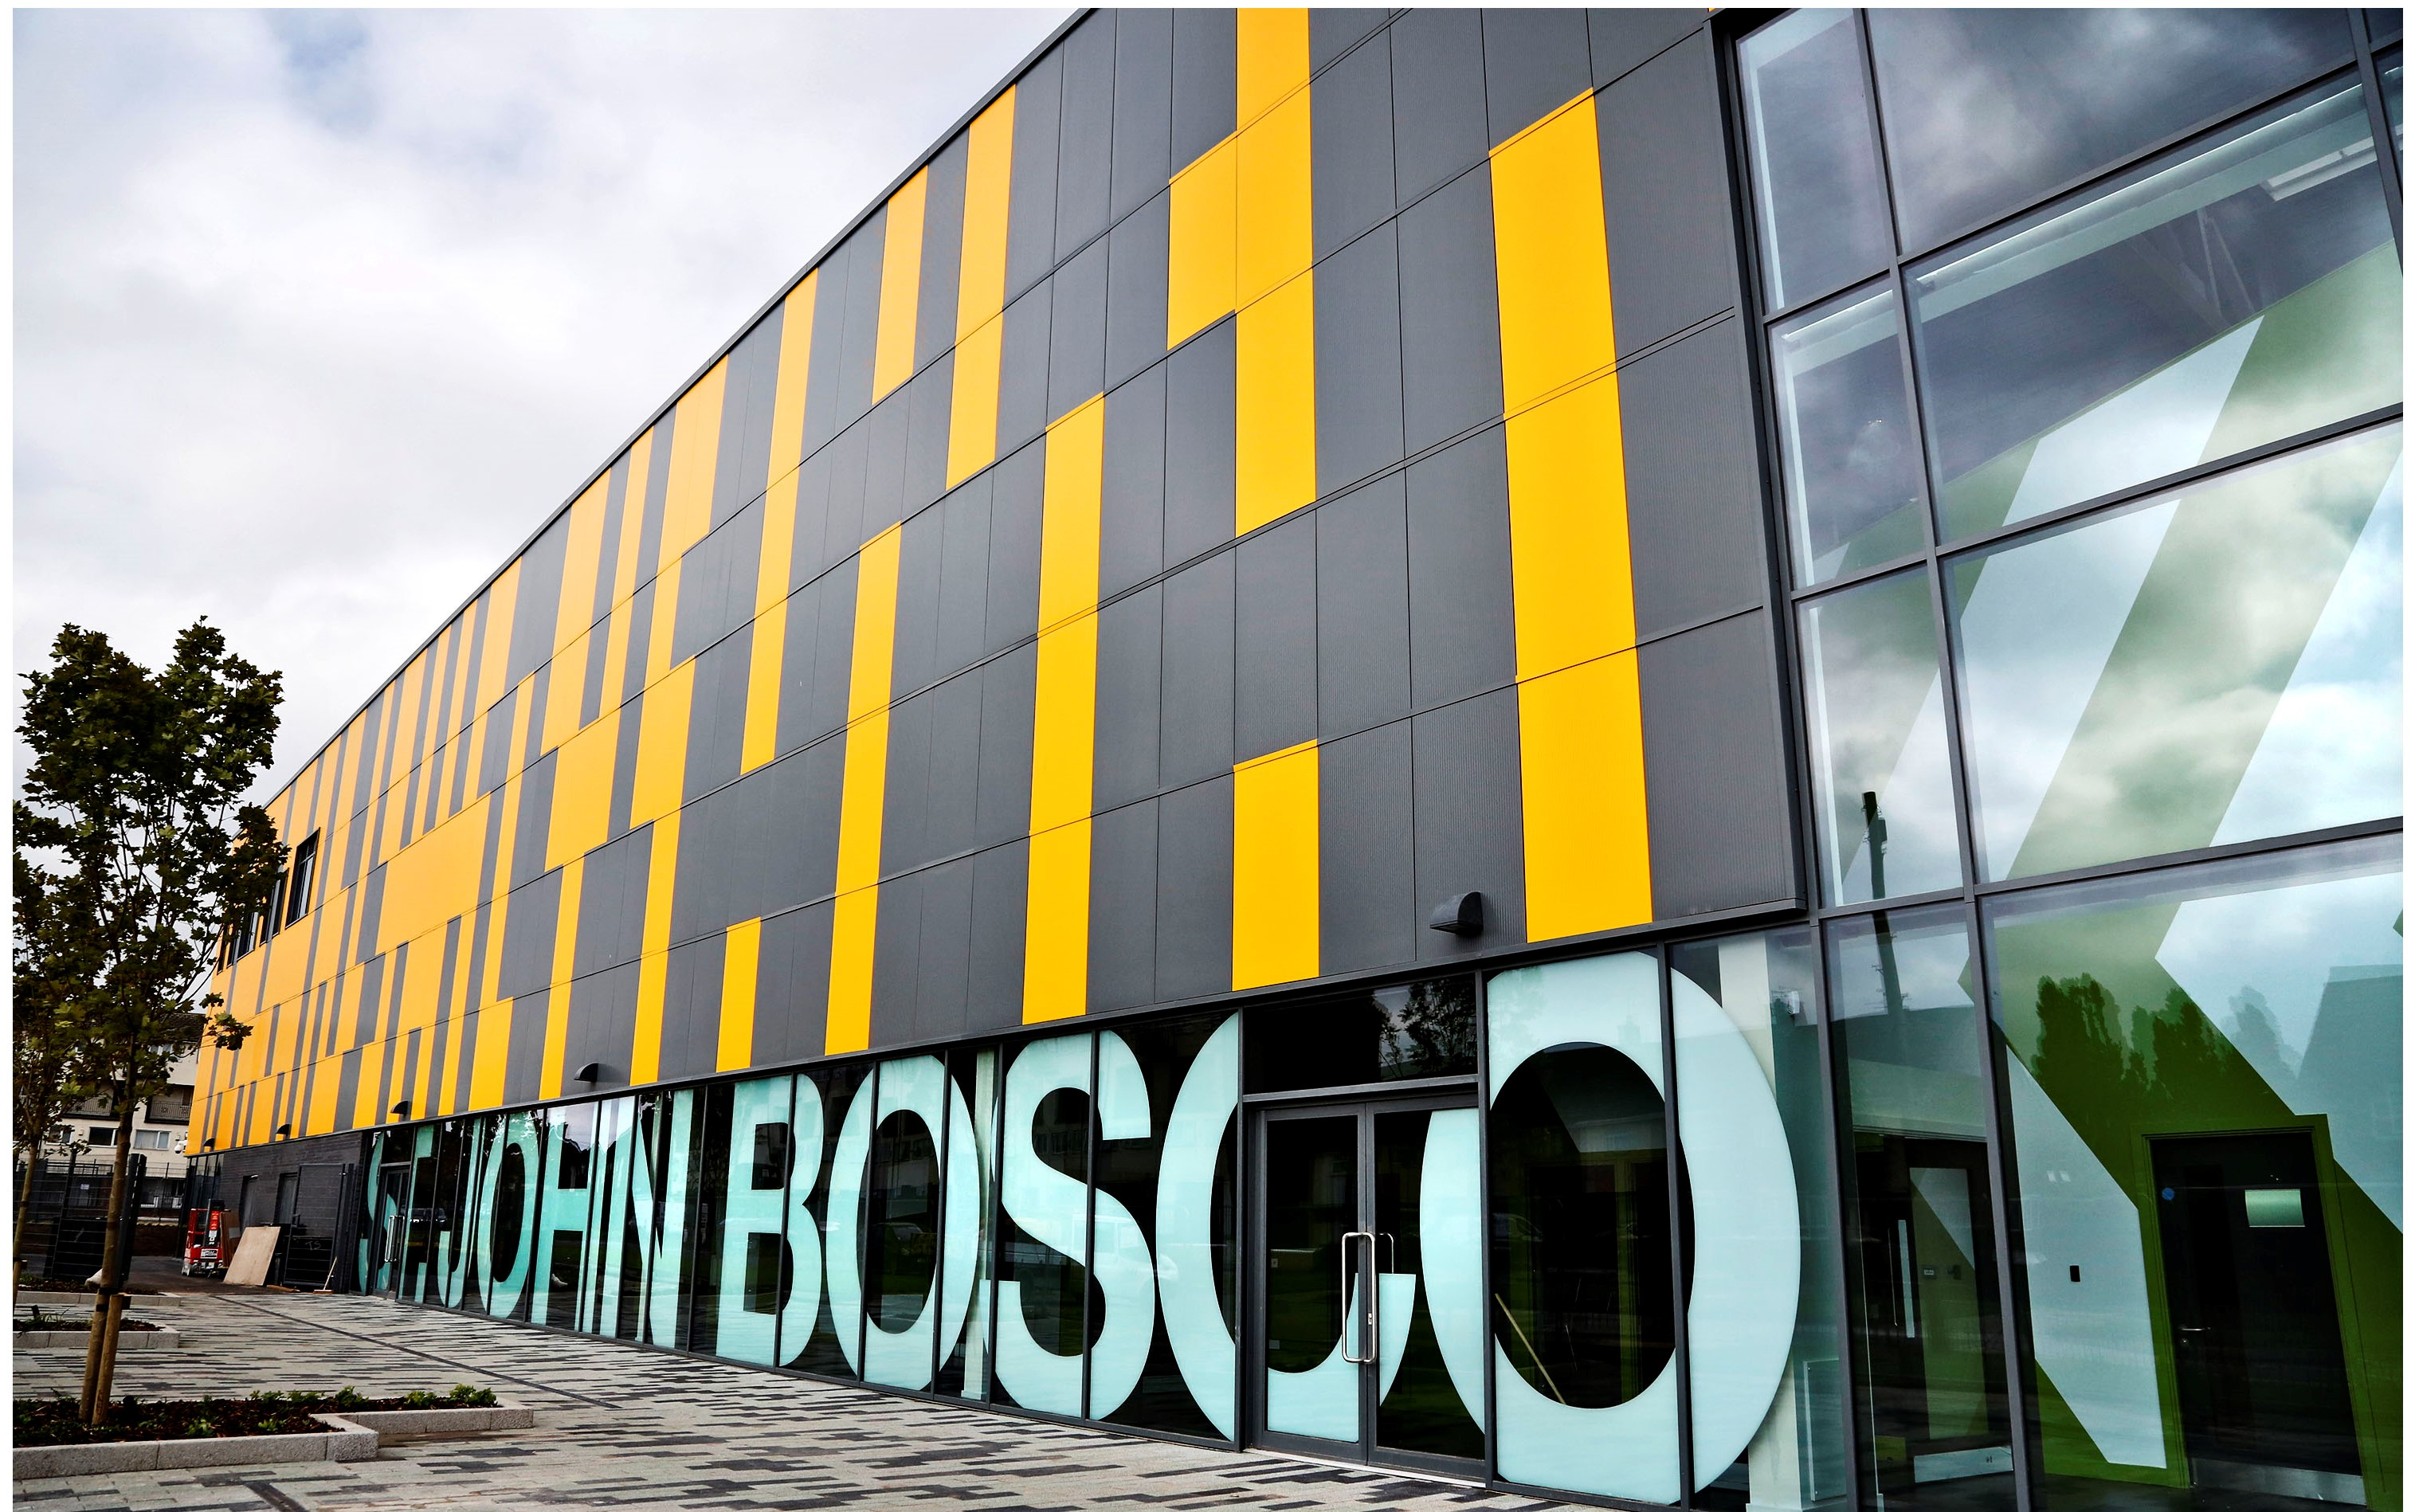 st john bosco This web site is for st john bosco school teachers, parents and students you will need a user name and password to use this site parents and faculty may login where it says login on the upper right.